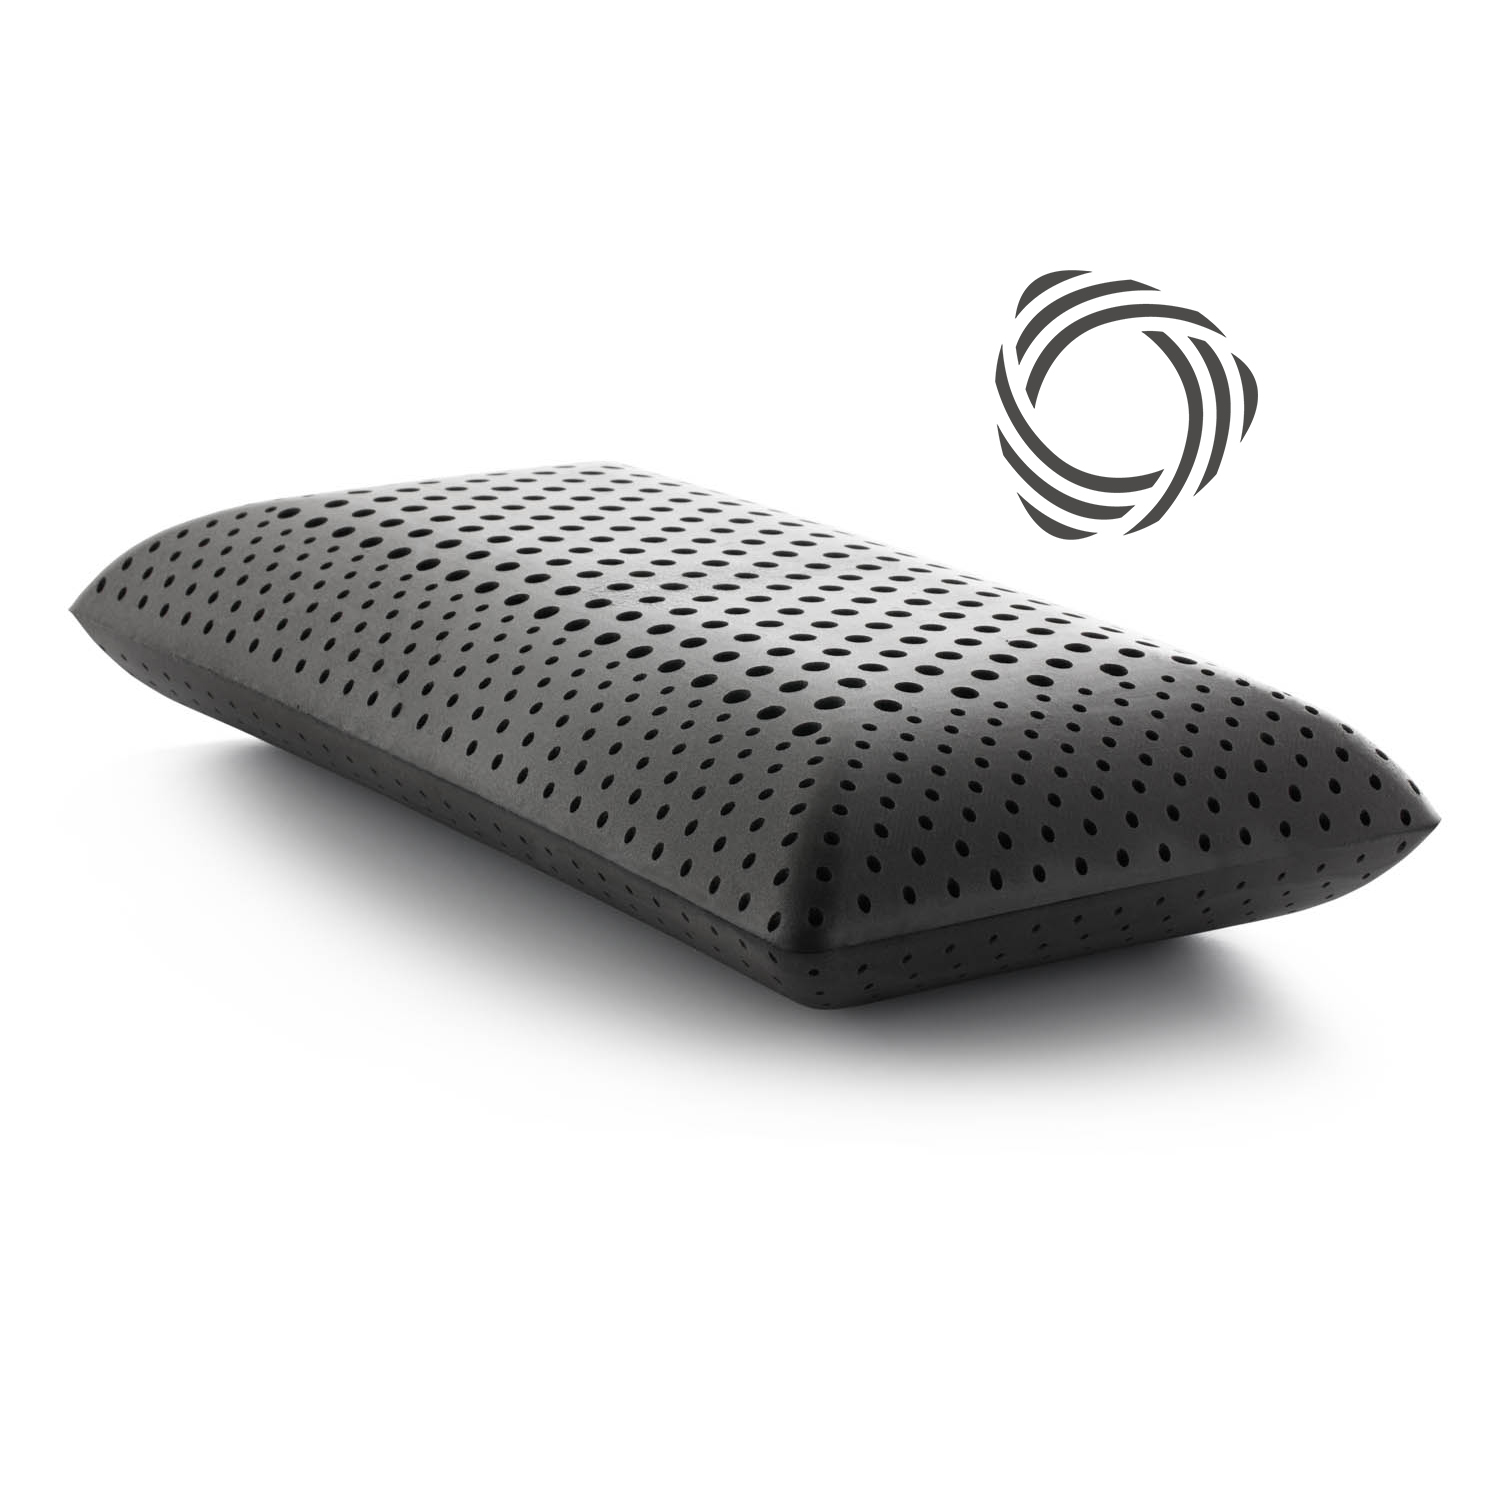 Malouf Z Zoned ActiveDough + Bamboo Charcoal Pillow